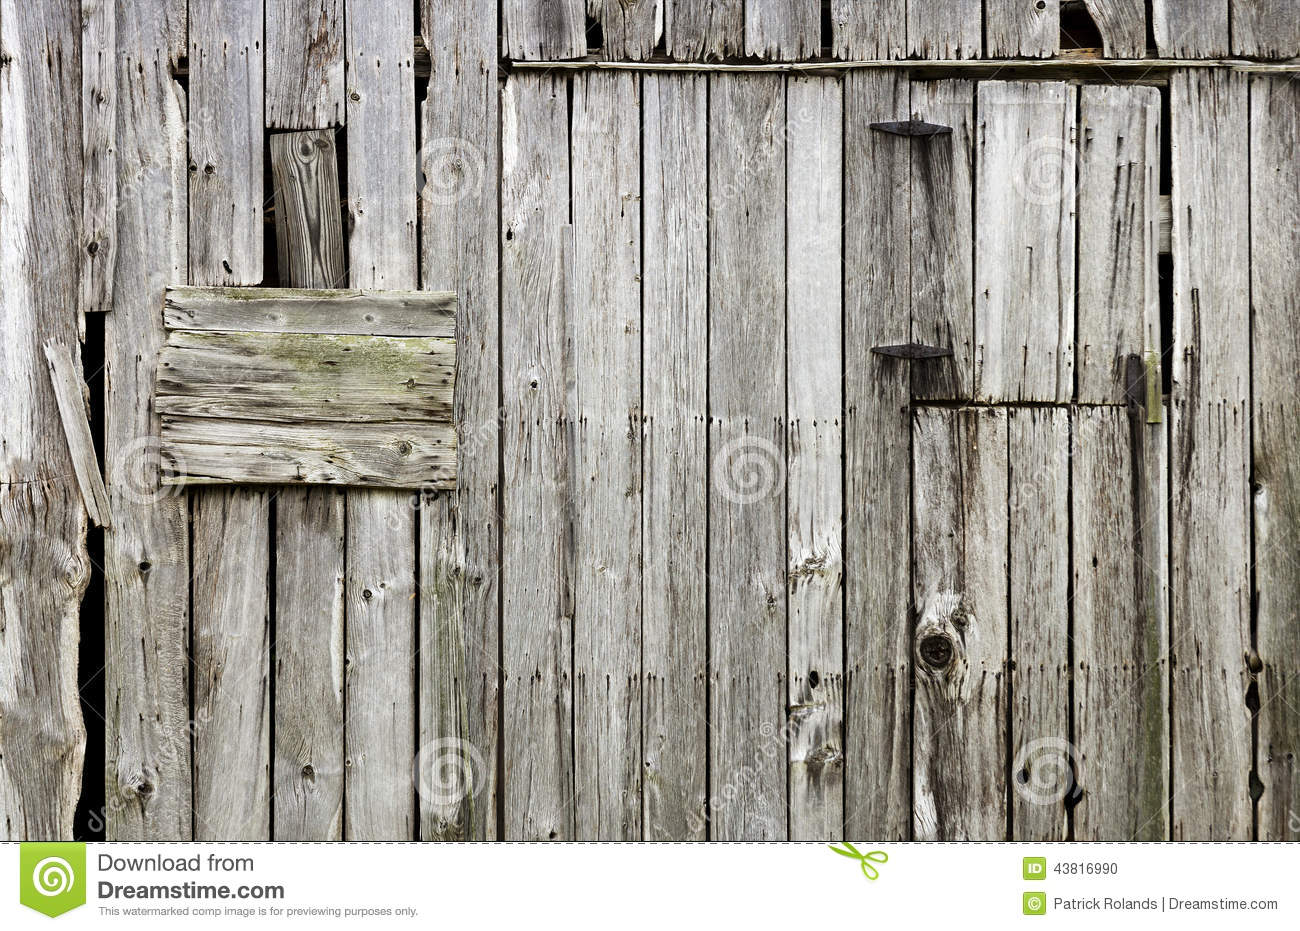 Weathered Old Wood Barn Background Stock Photo - Image ...